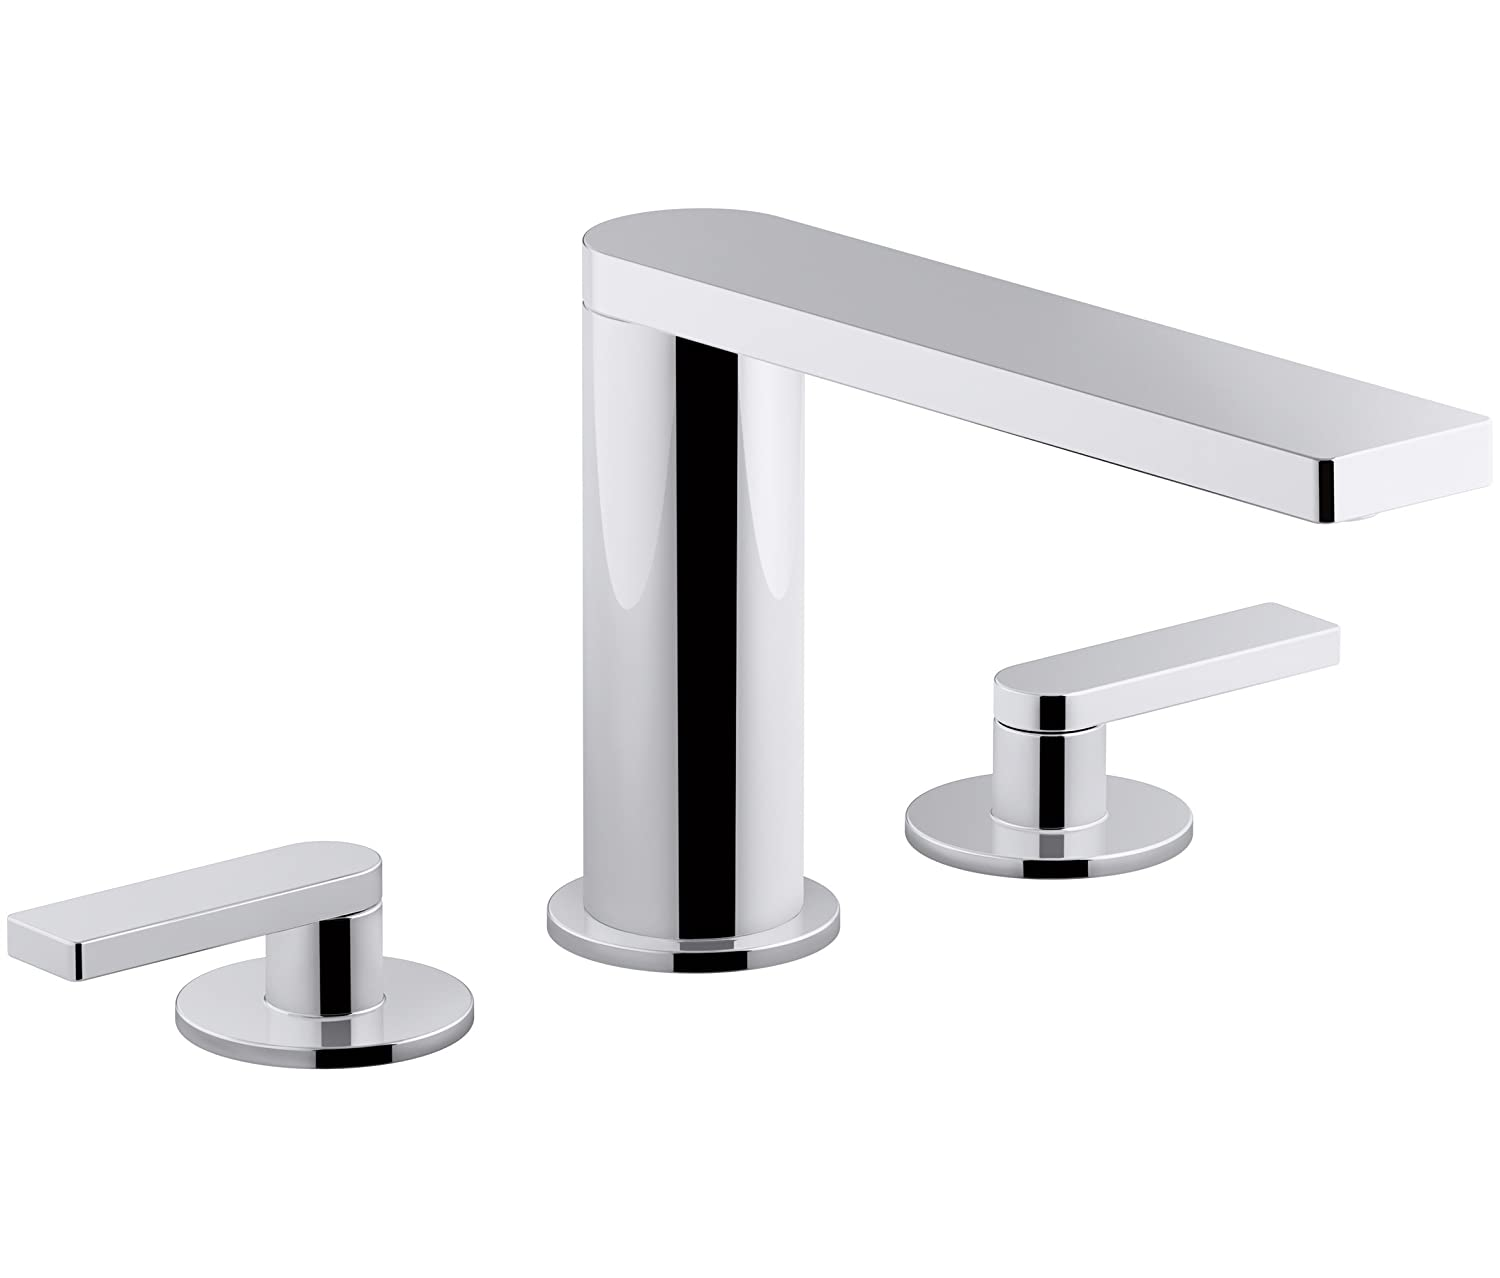 Kohler Bathroom Faucets Amazon Faucets Bathroom Sink Bathroom Sink Faucets Kohler Bathroom Sink